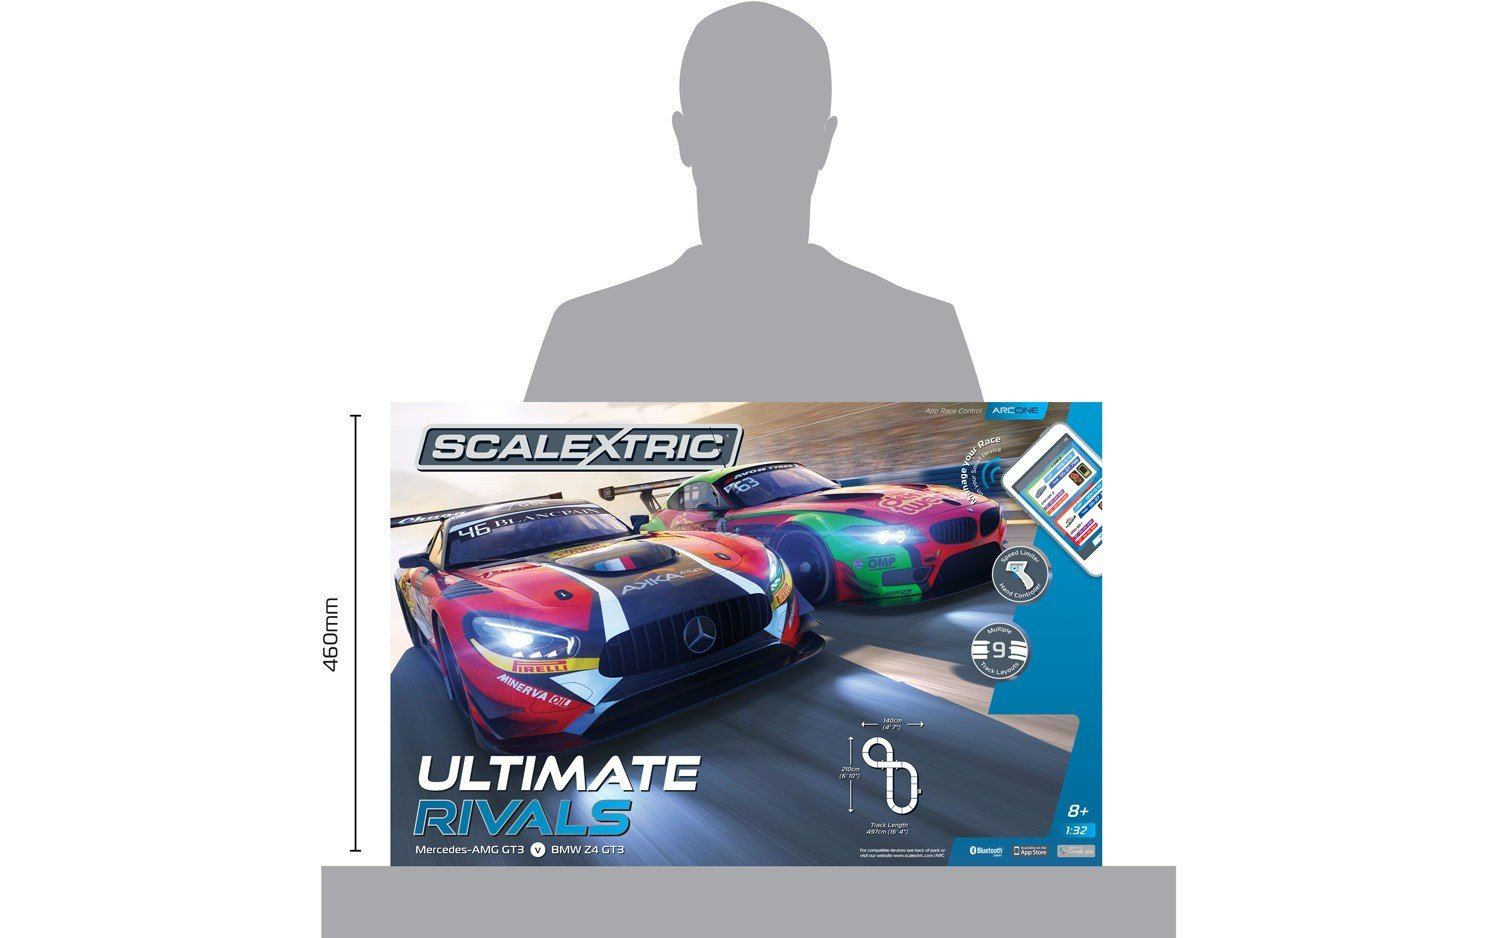 Scalextric C1356T ARC ONE Ultimate Rivals Slot Car Set by Scalextric (Image #6)